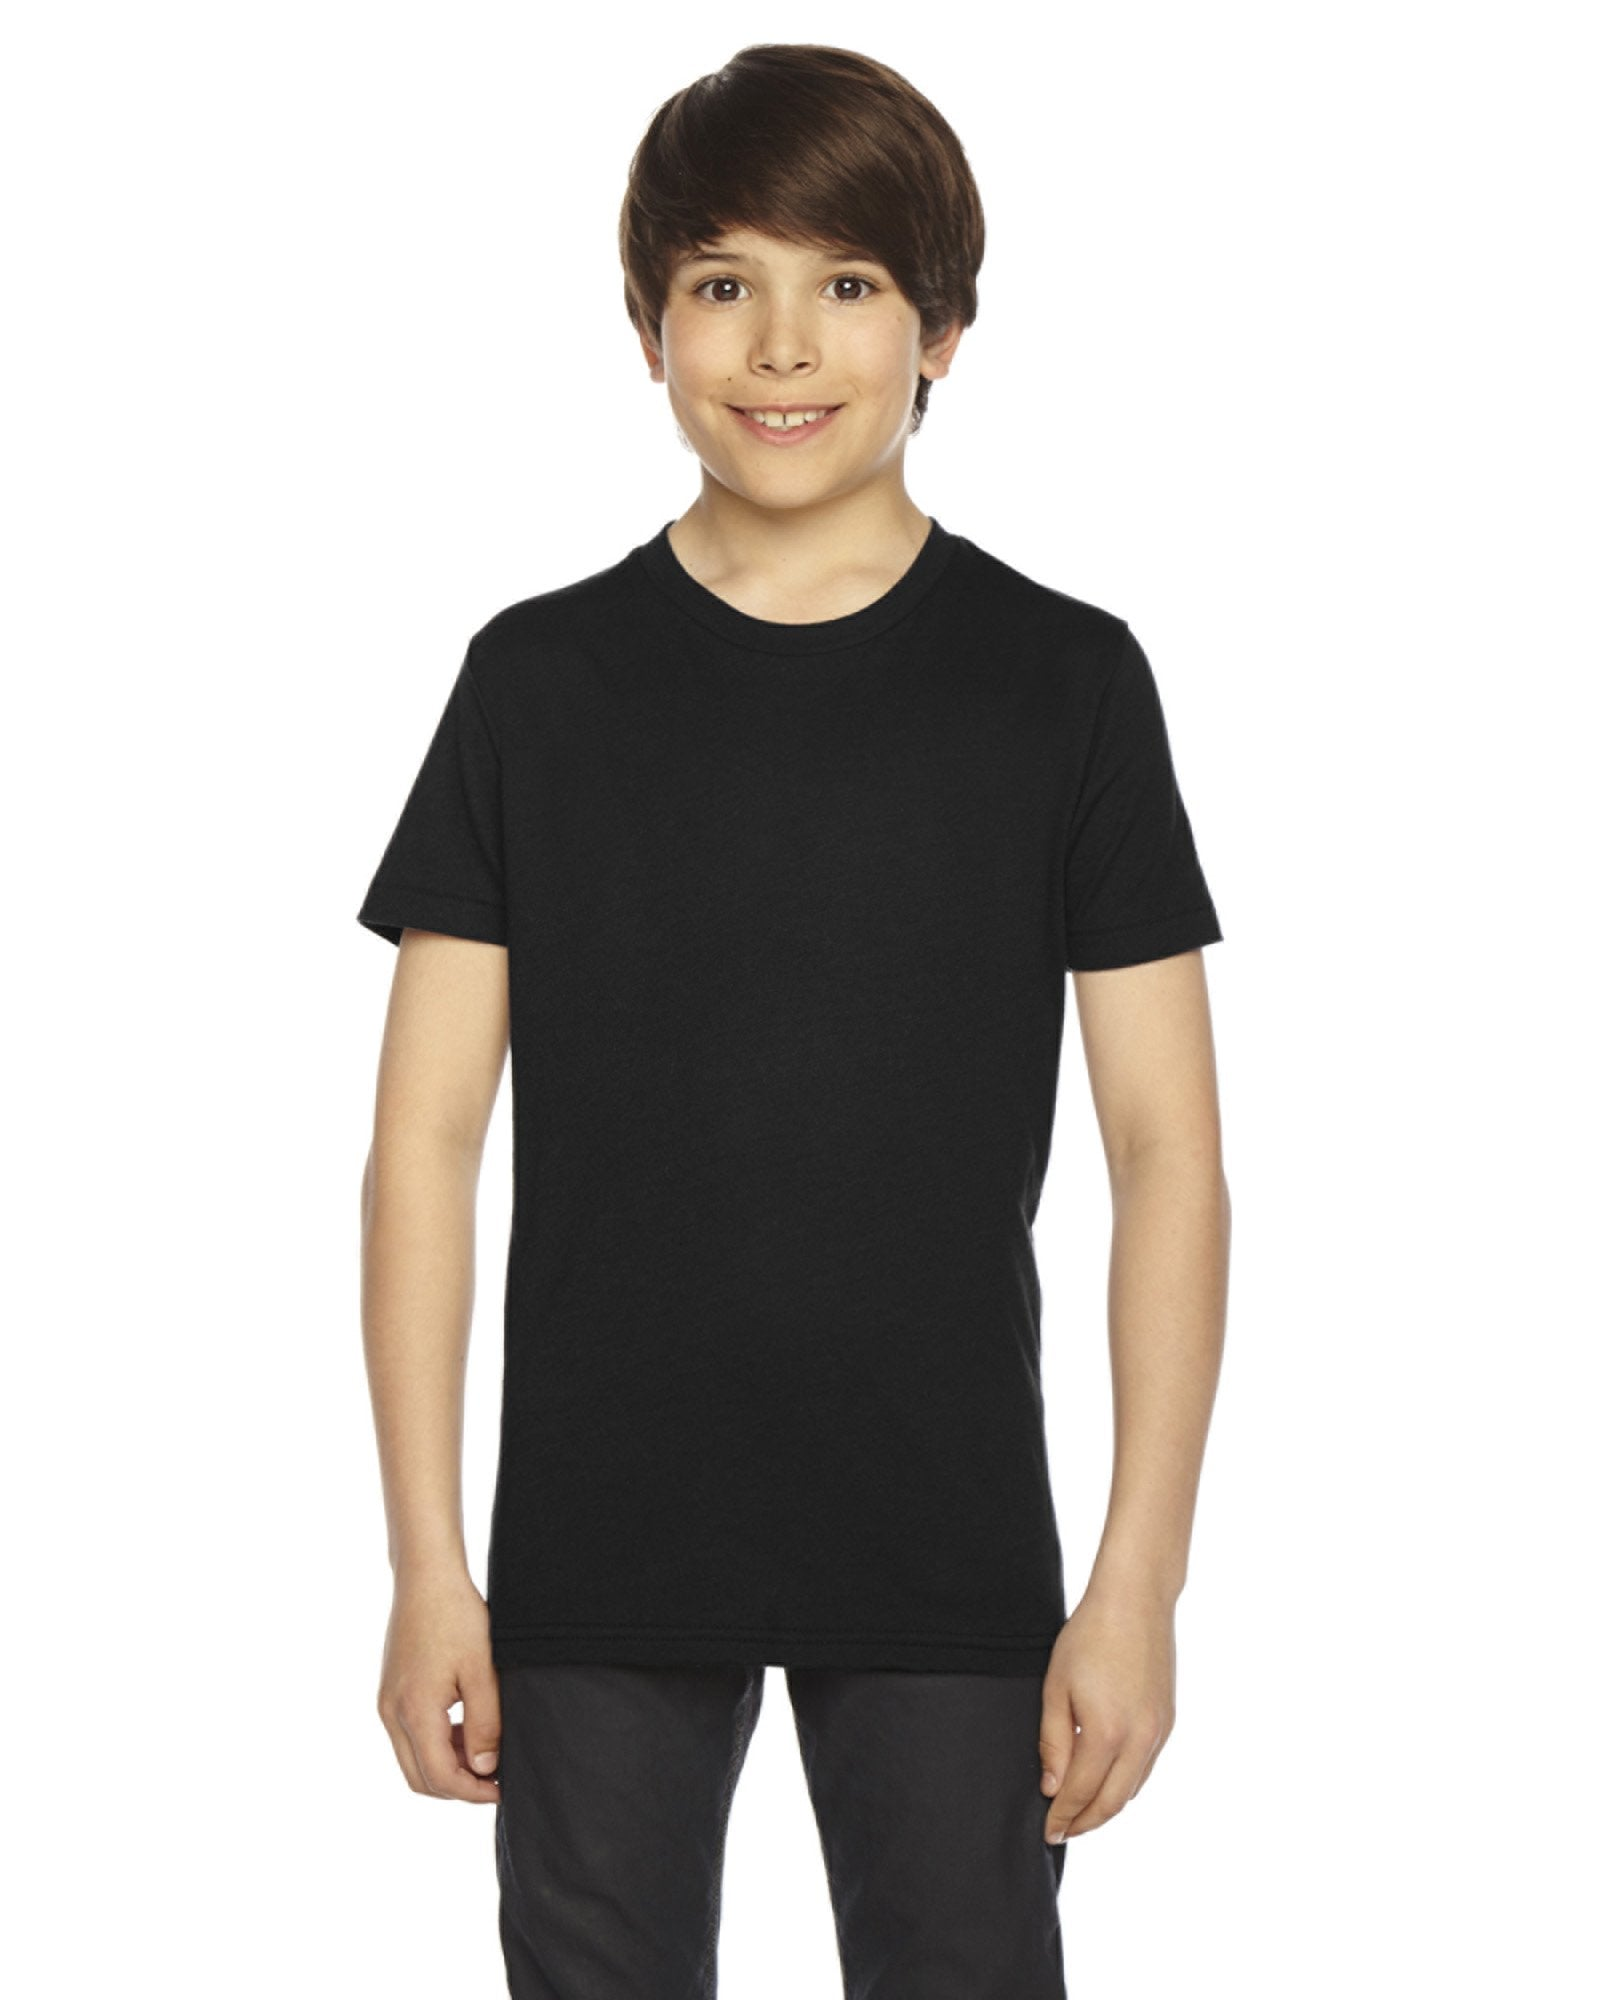 American Apparel - BB201 - Youth Poly-Cotton Short-Sleeve Crewneck